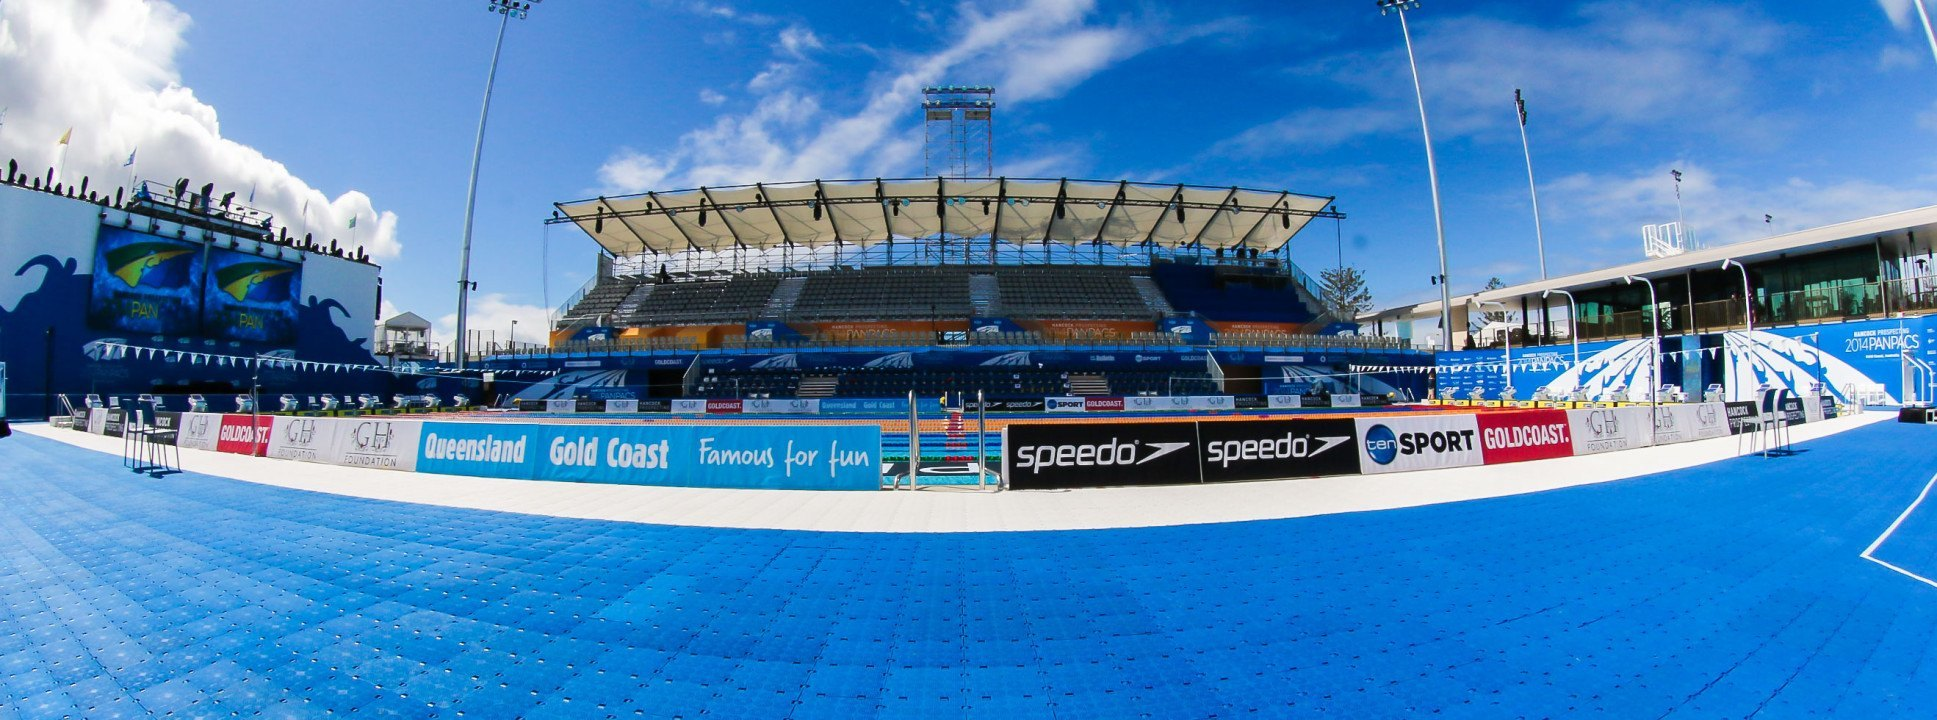 Swimming Australia Chooses Gold Coast Aquatic Centre for 2018 Trials